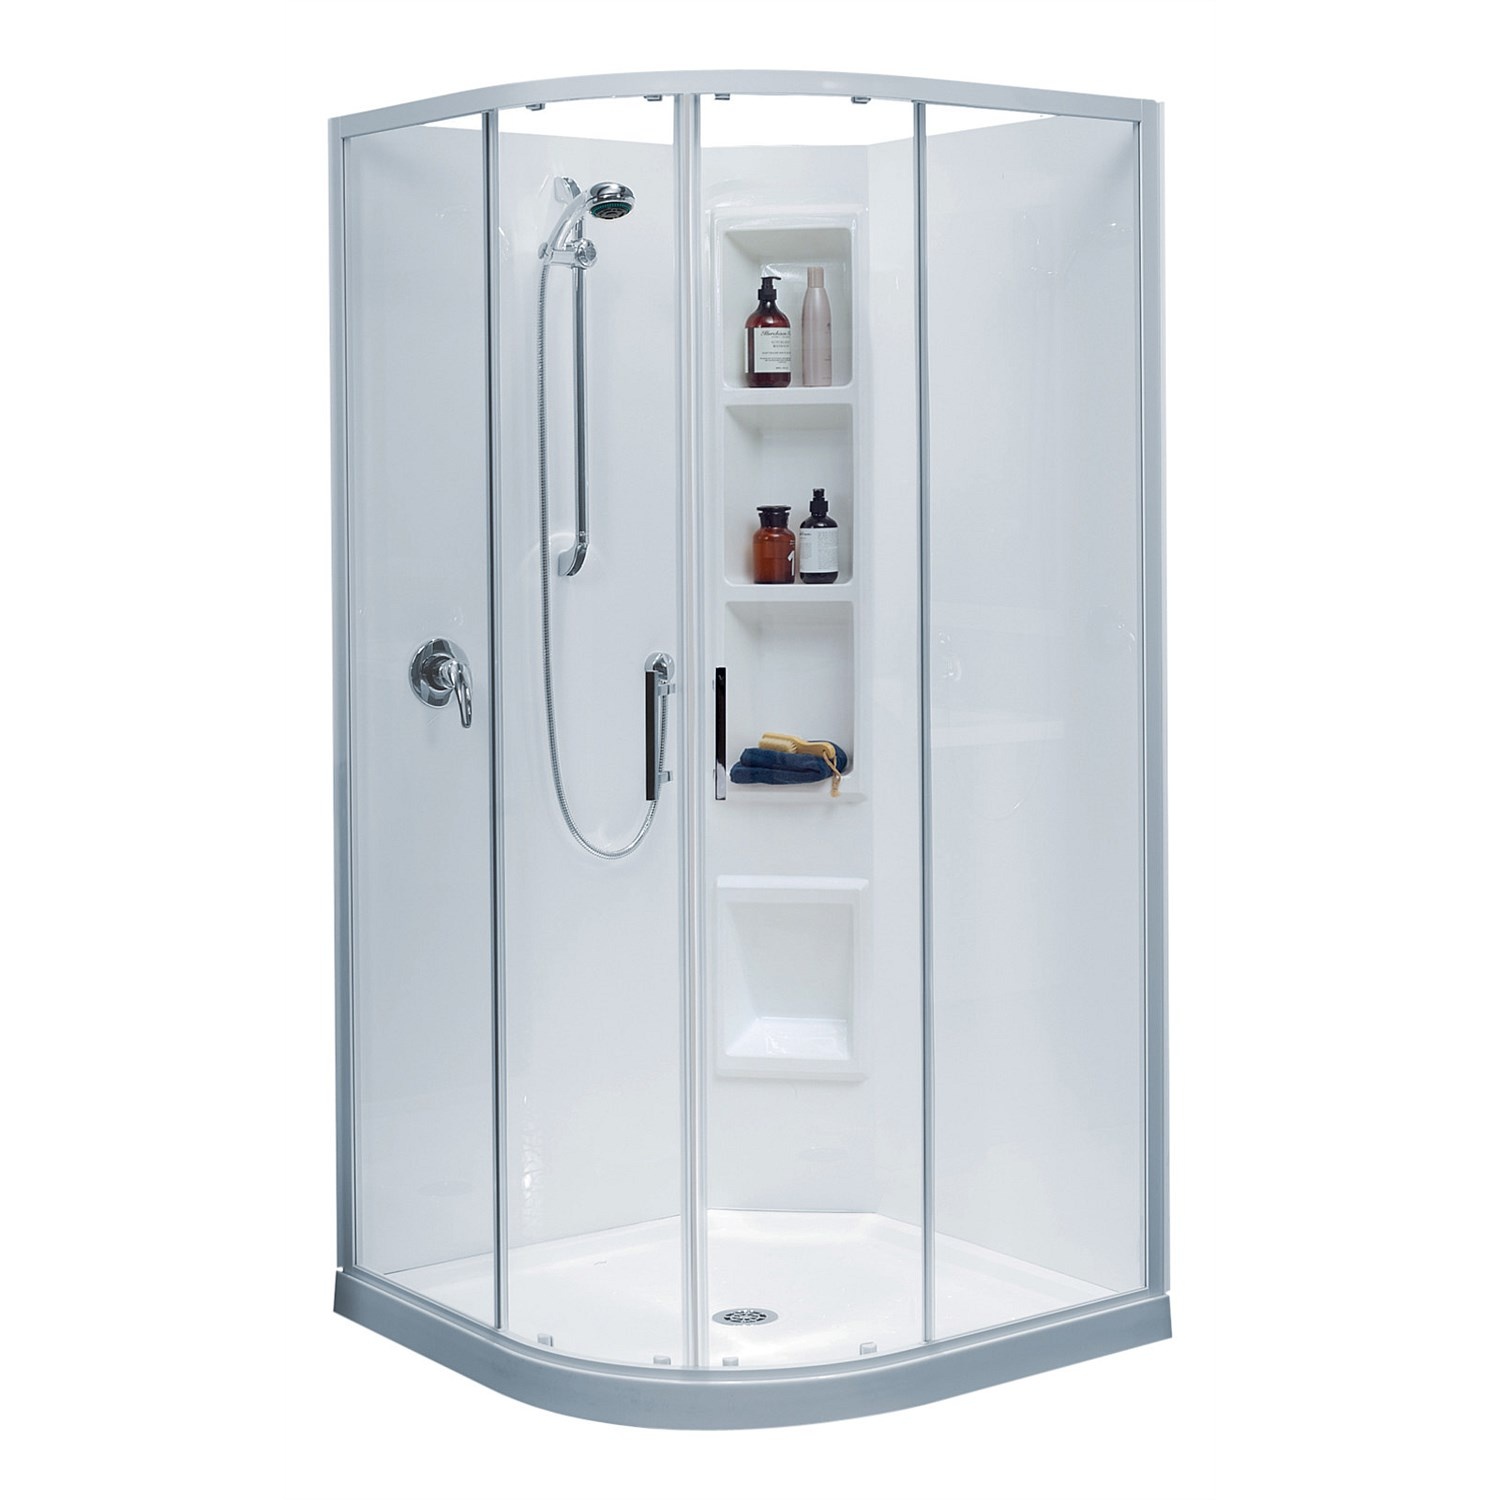 Acrylic - Clearlite Cezanne 1000mm Round Shower Enclosure